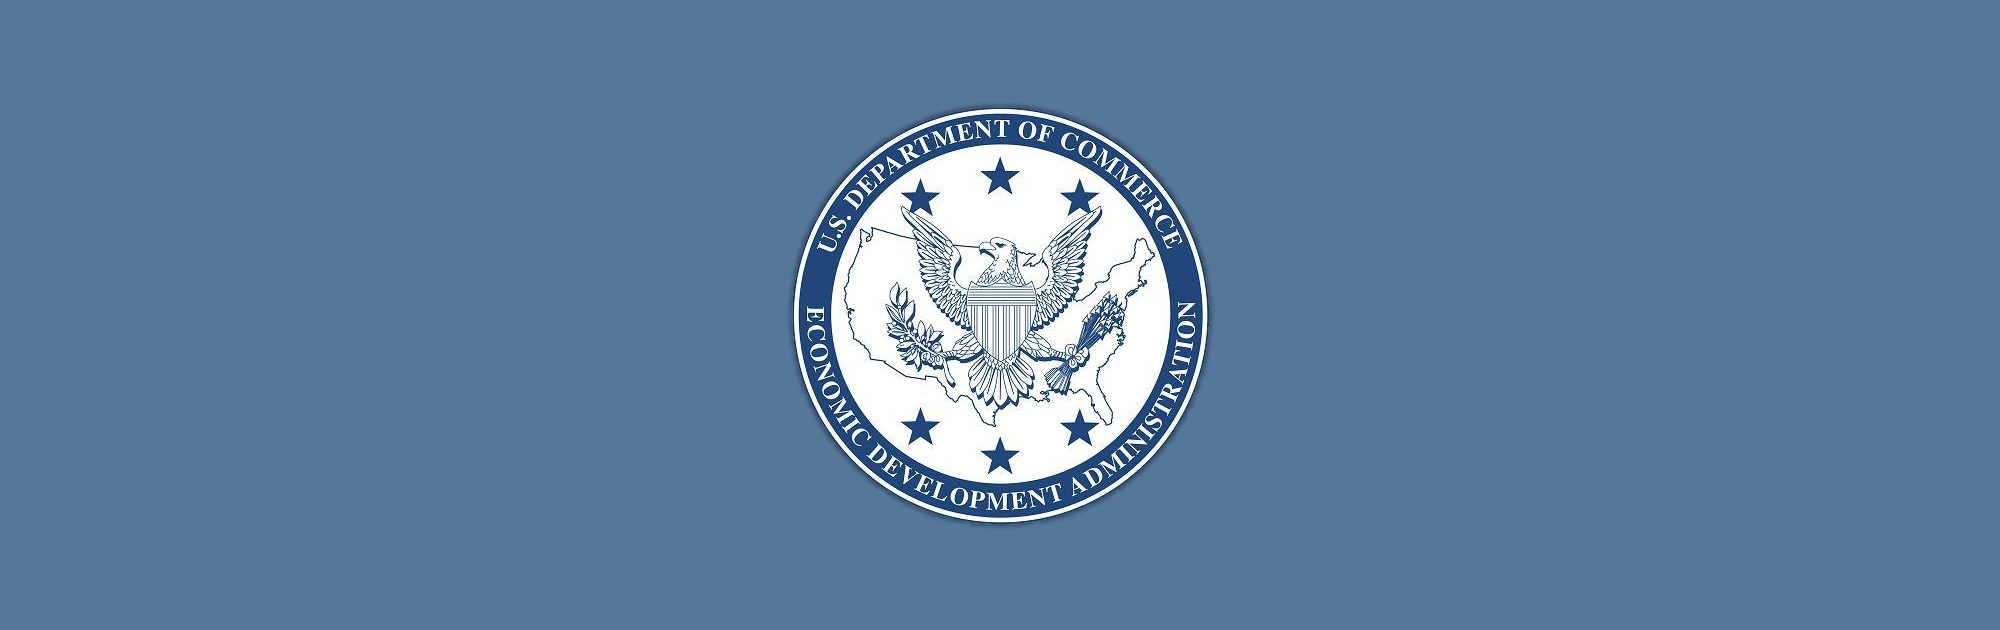 U.S. Department of Commerce Economic Development Administration logo.